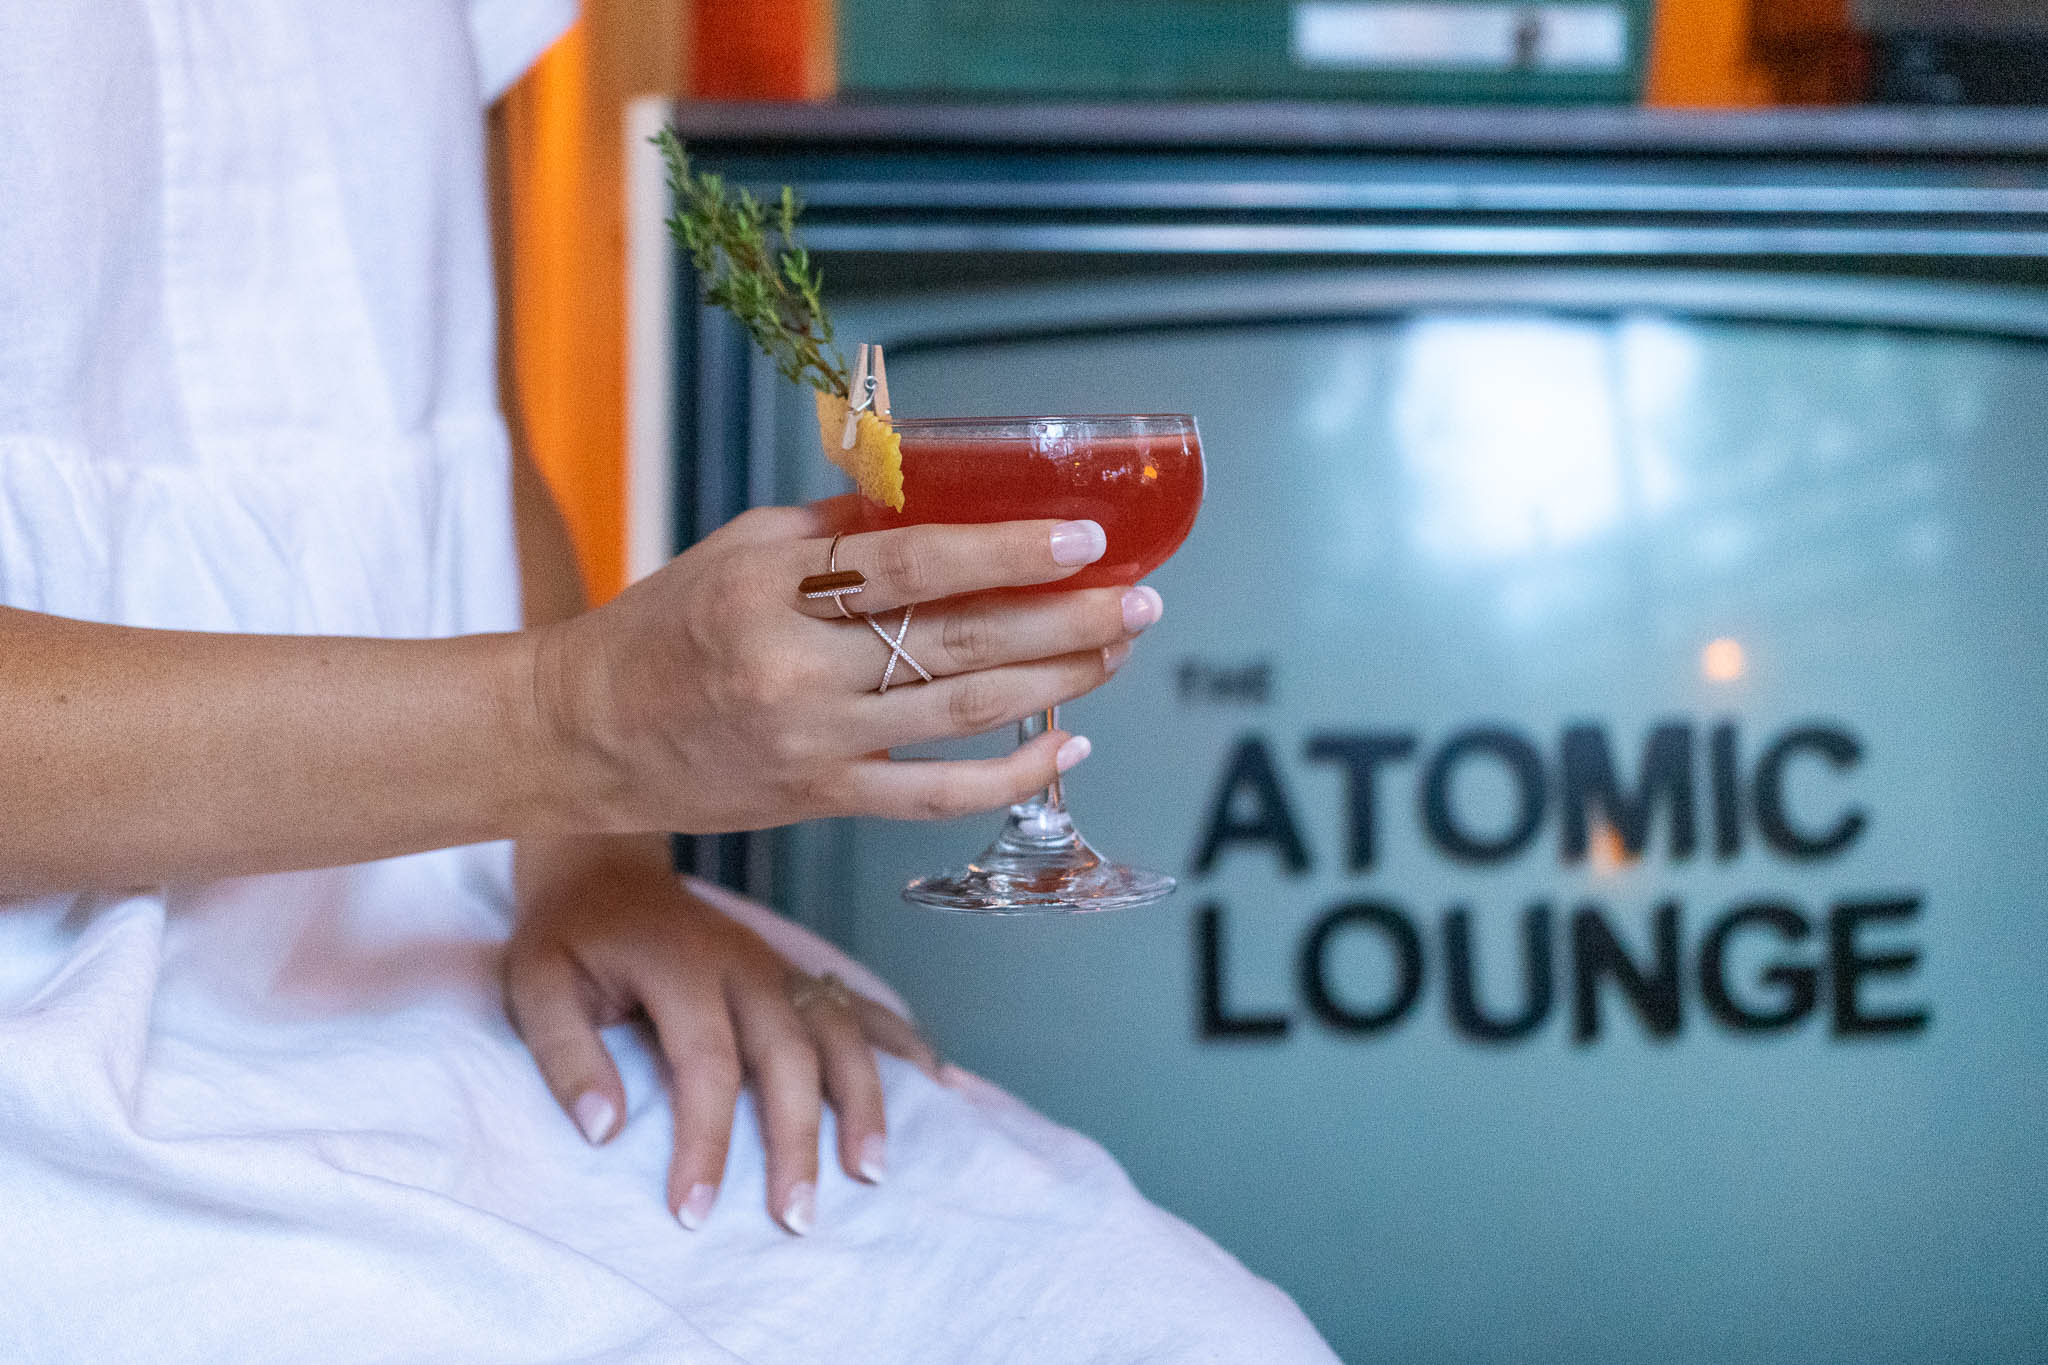 The Atomic Lounge cocktail